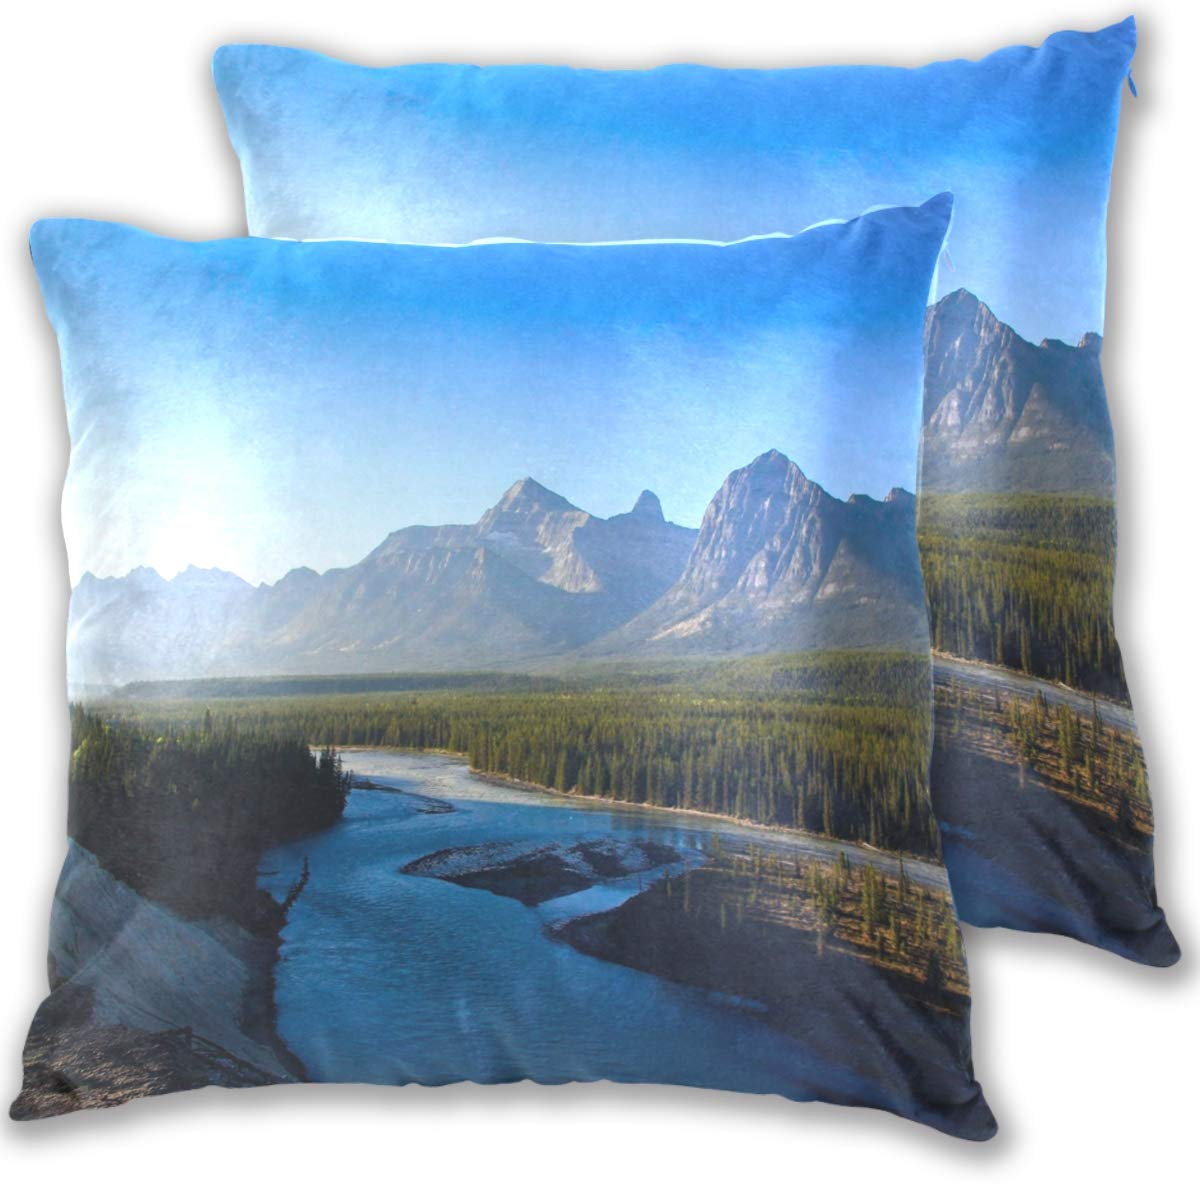 Amazon.com: Forest River Valley Throw Pillow Cover, Cotton ...